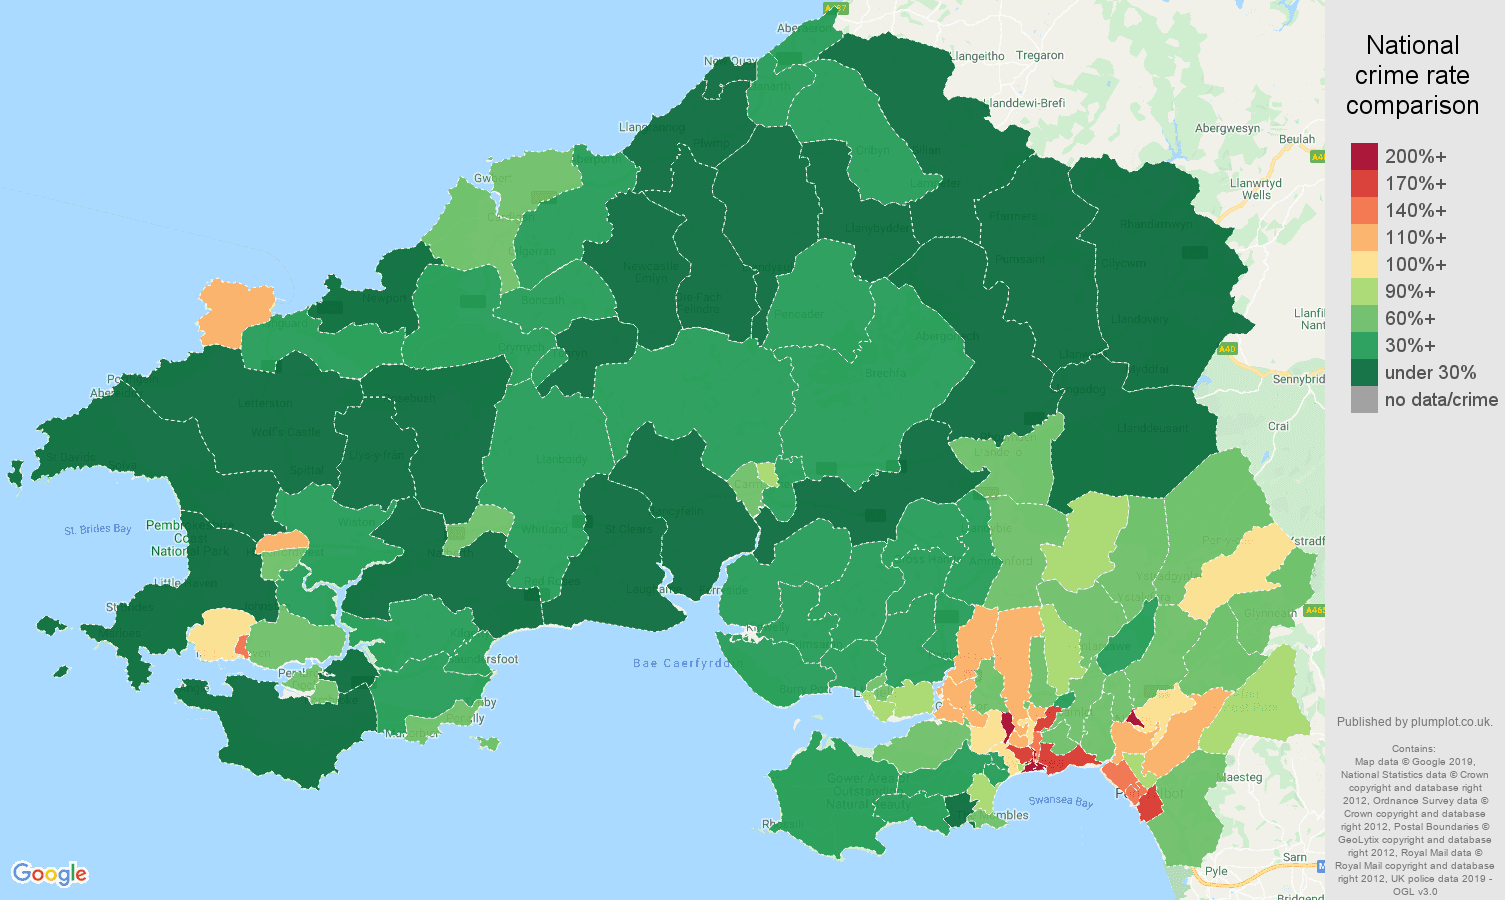 Swansea public order crime rate comparison map